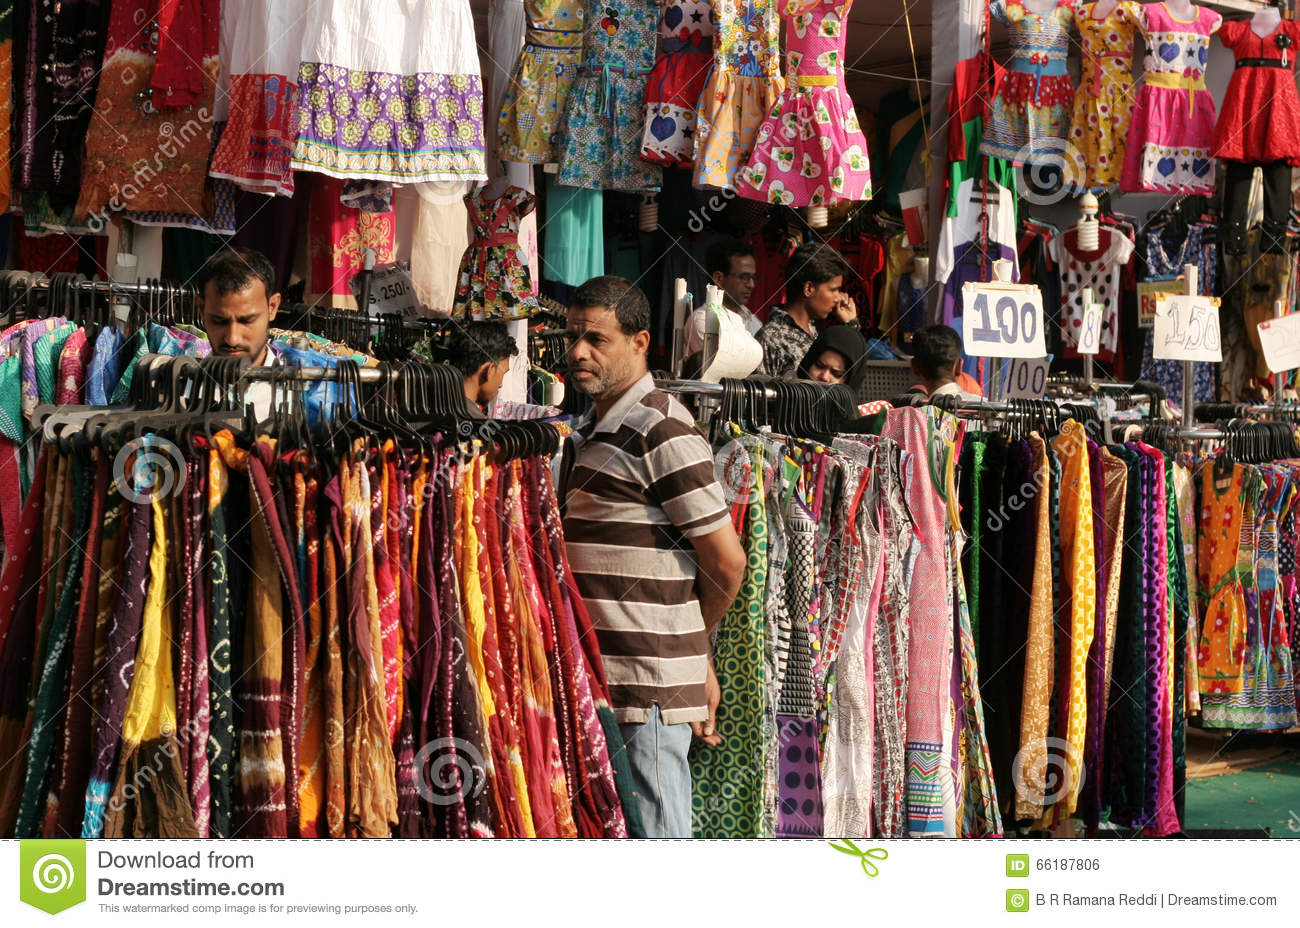 71552524 Indians shopping in road side clothes shop during an annual exhibition  event on February 4,2016 in Hyderabad,India.Common scene in India.